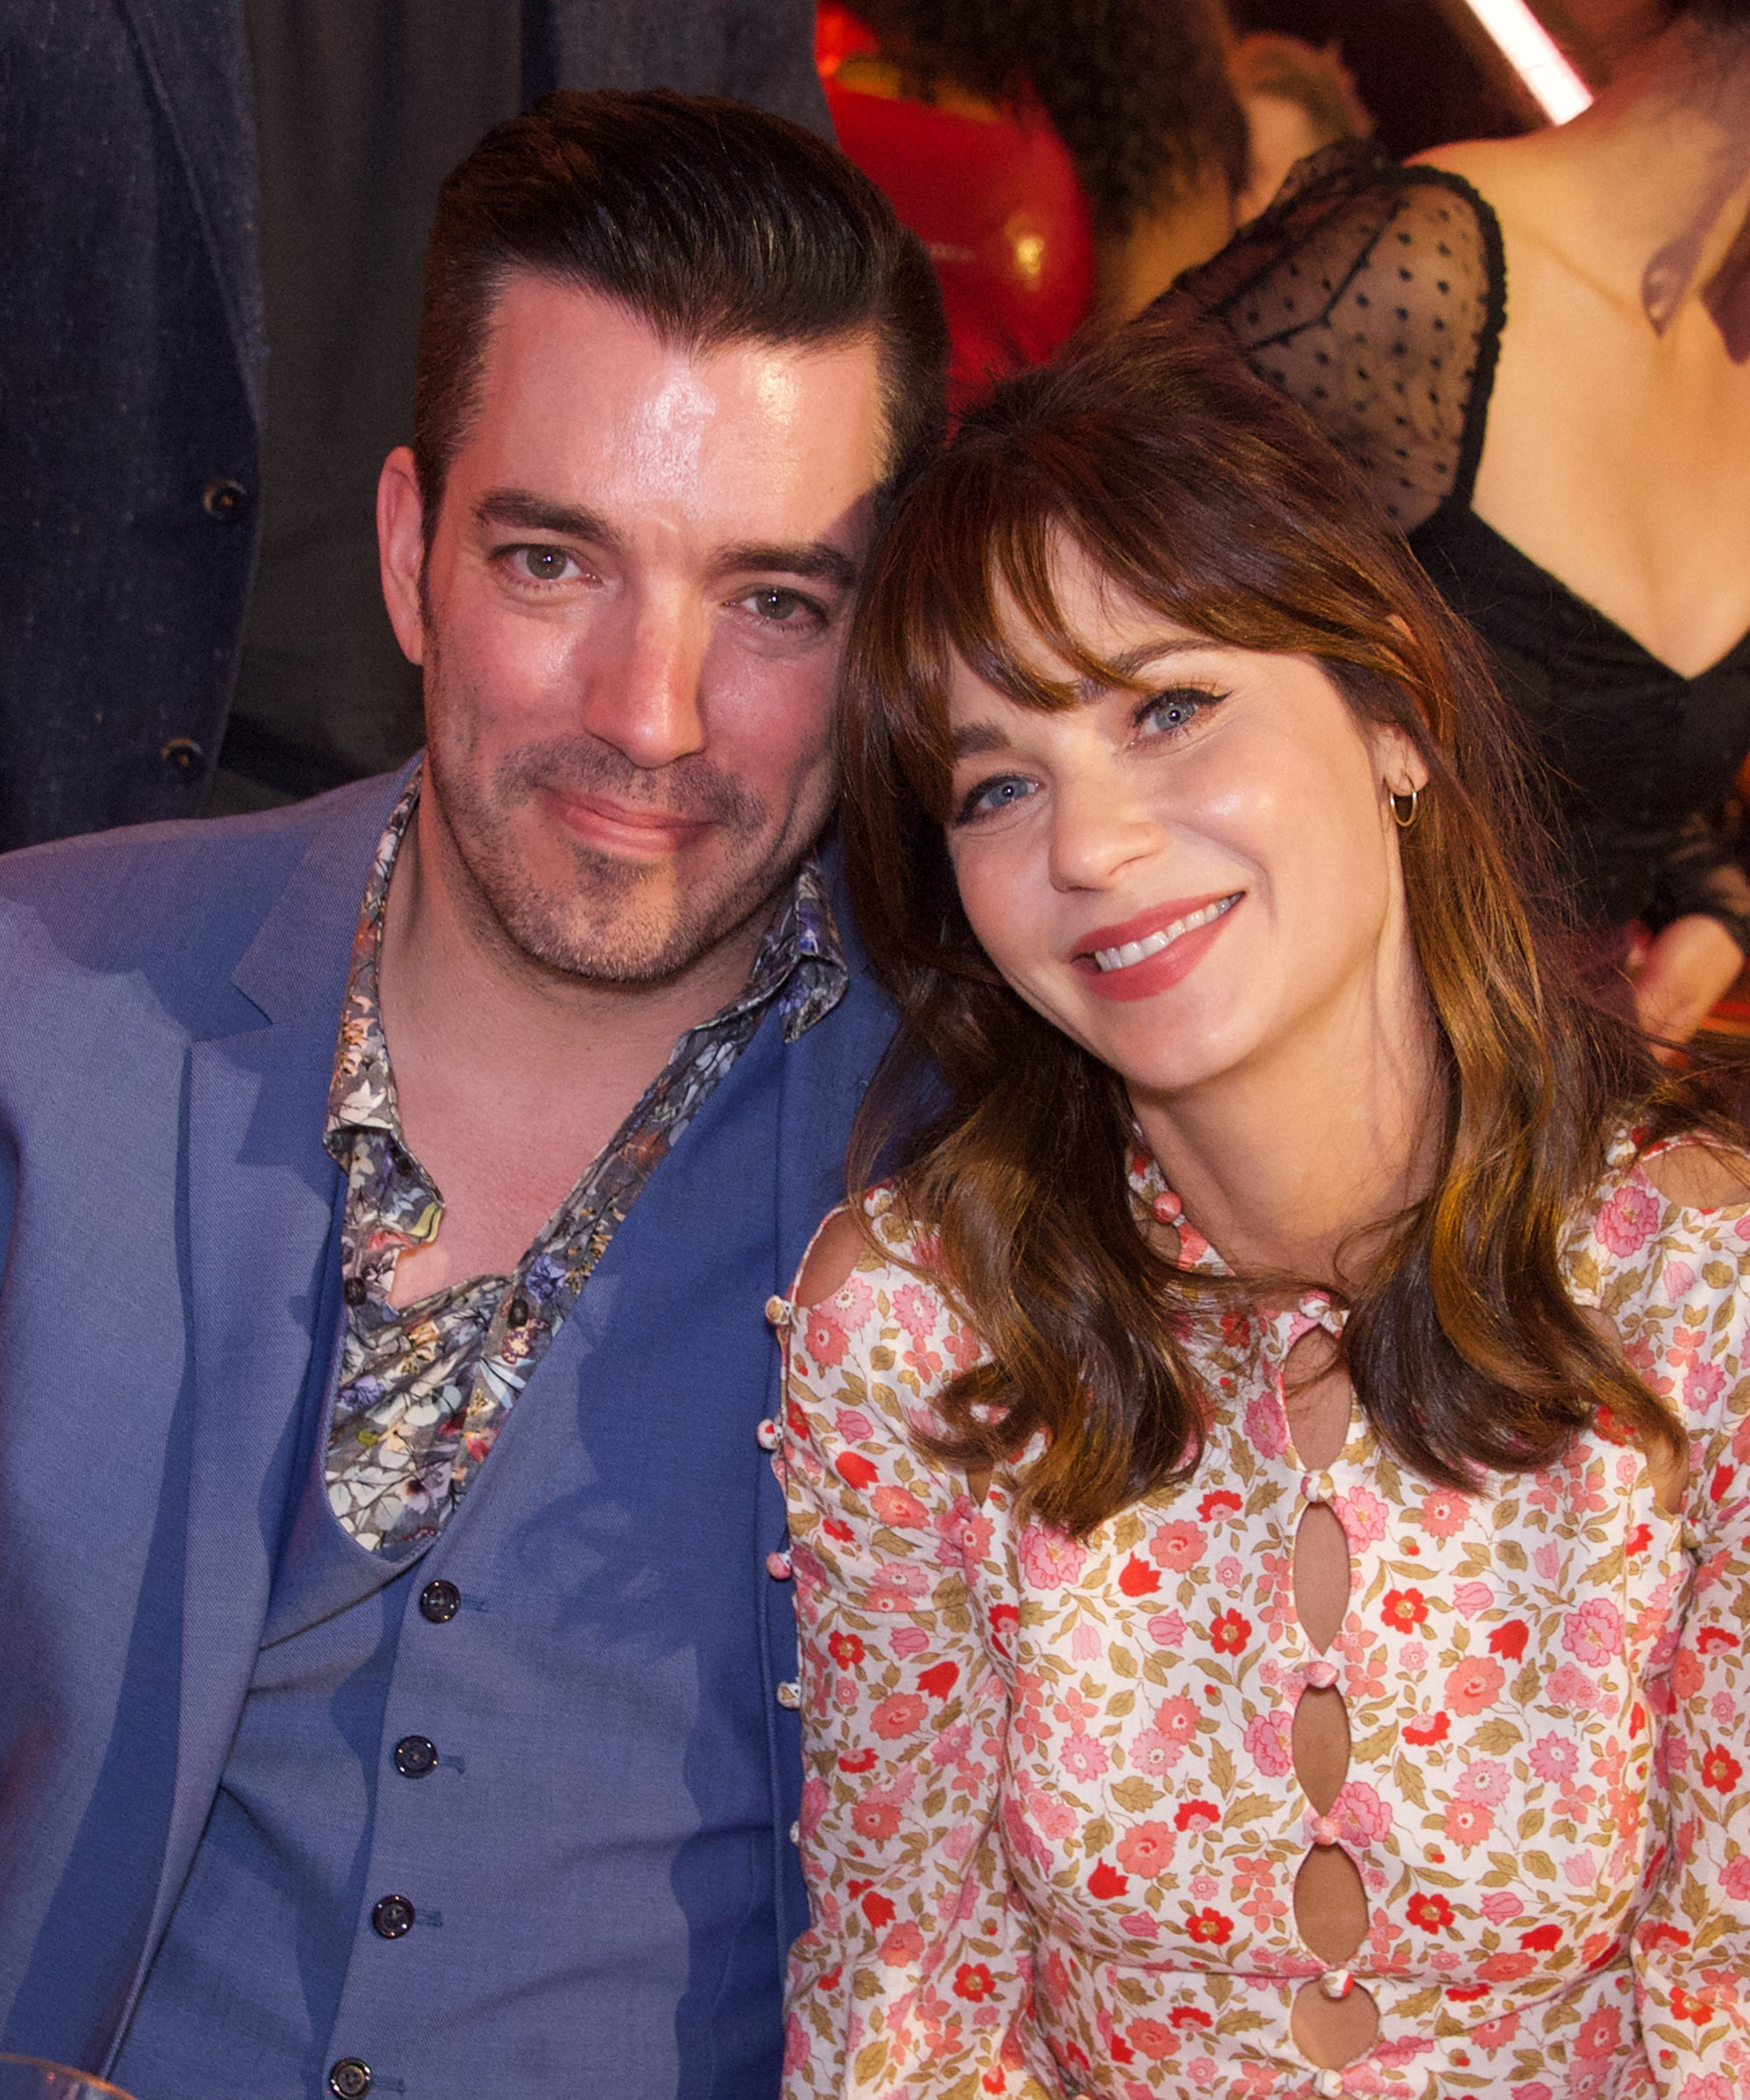 Zooey Deschanel & Jonathan Scott Already Have Their Own Christmas Traditions